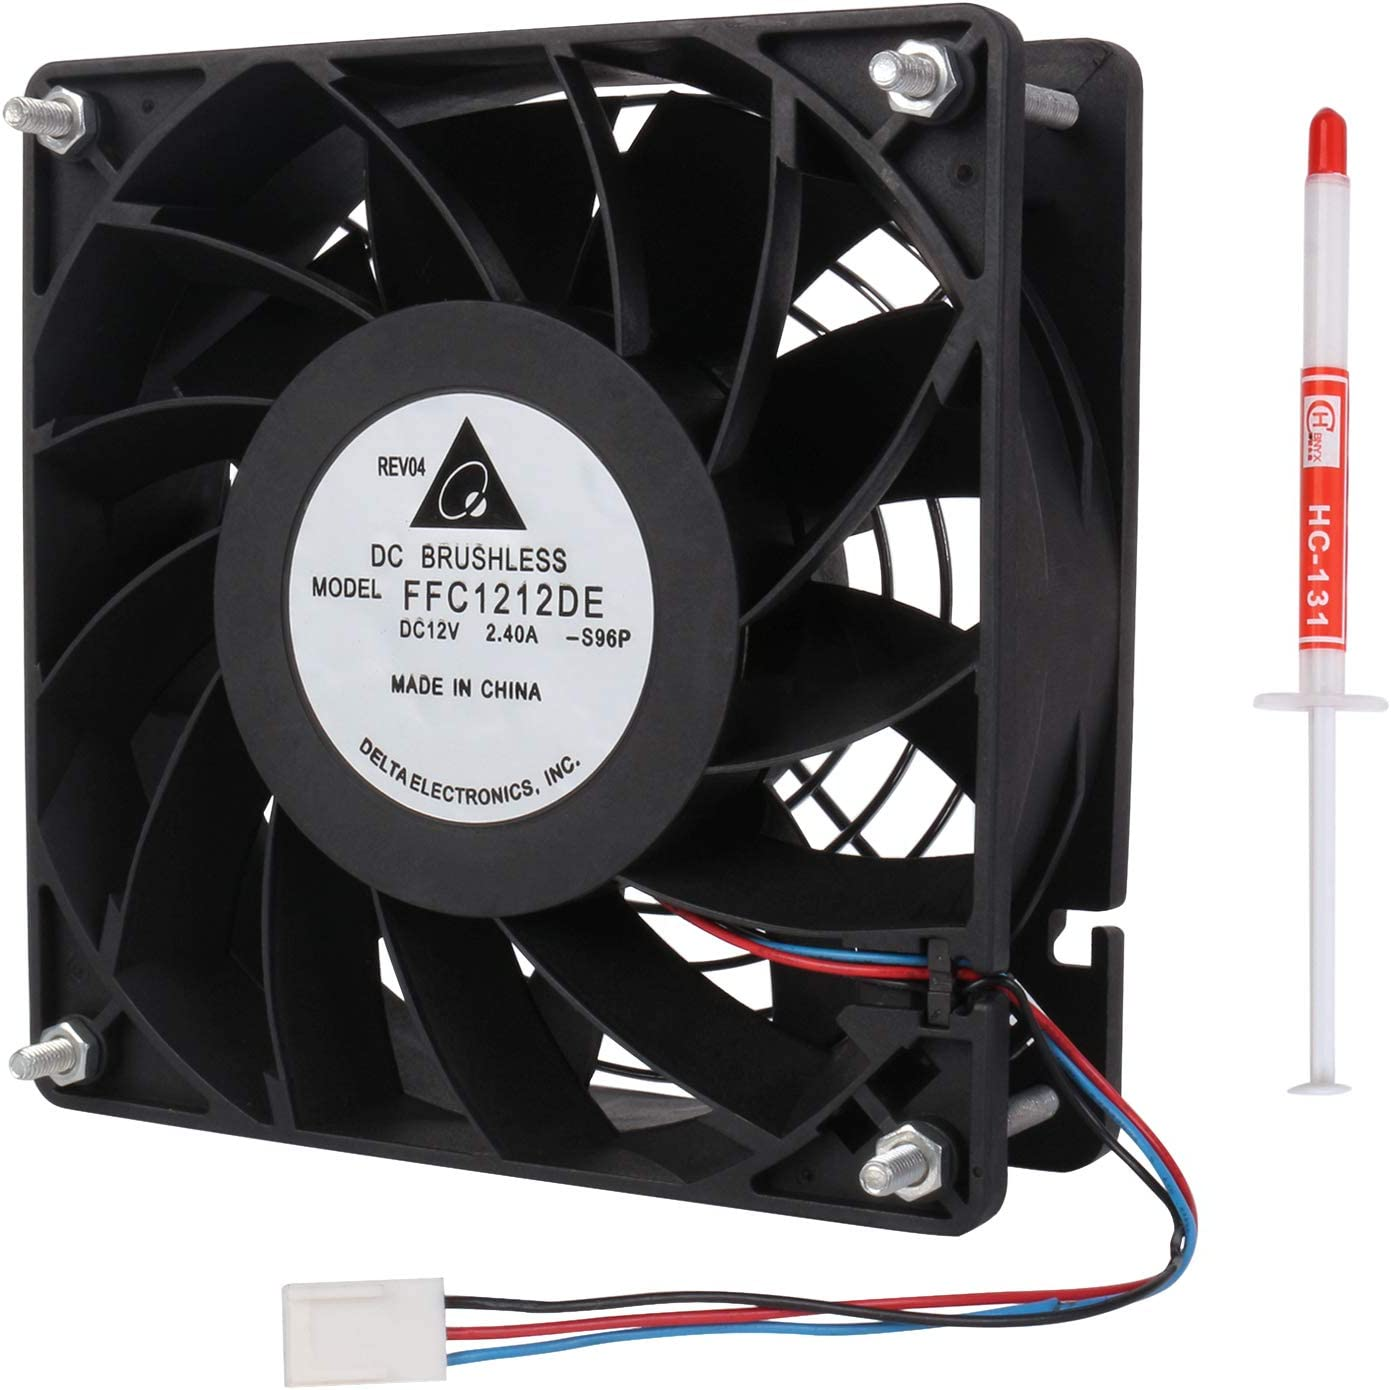 Li-SUN FFC1212DE Cooling Fan, 120x120x38mm 3-Pin 3-Wire, DC 12V 200CFM 4000RPM, High CFM PC Computer CPU Cooler with Metal Finger Guard Grill (Also Compatible with Model: FFB1212EHE)